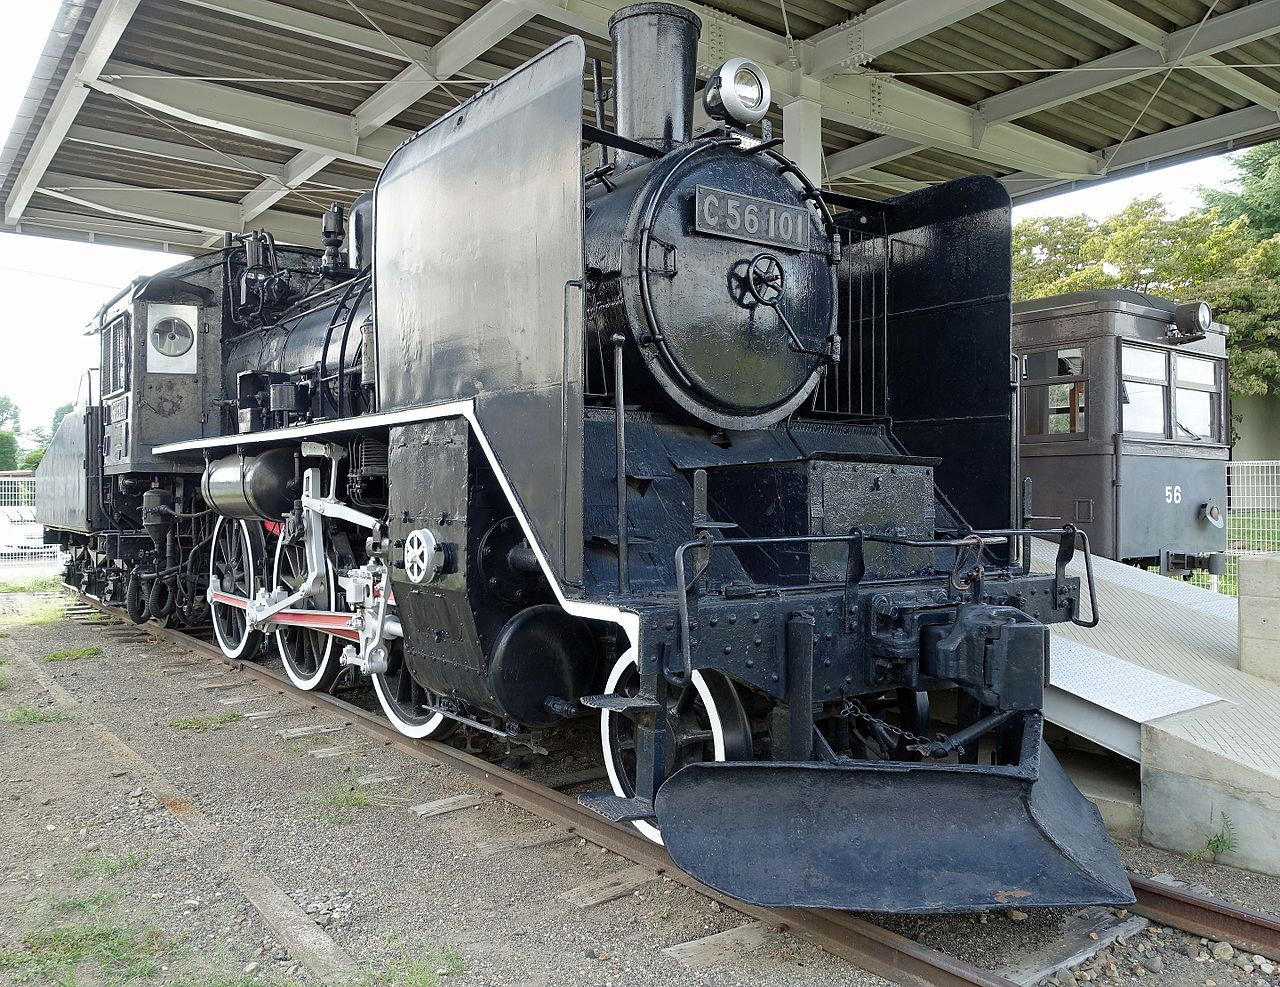 File C56 101 At Saku City 2015 Jpg Wikimedia Commons